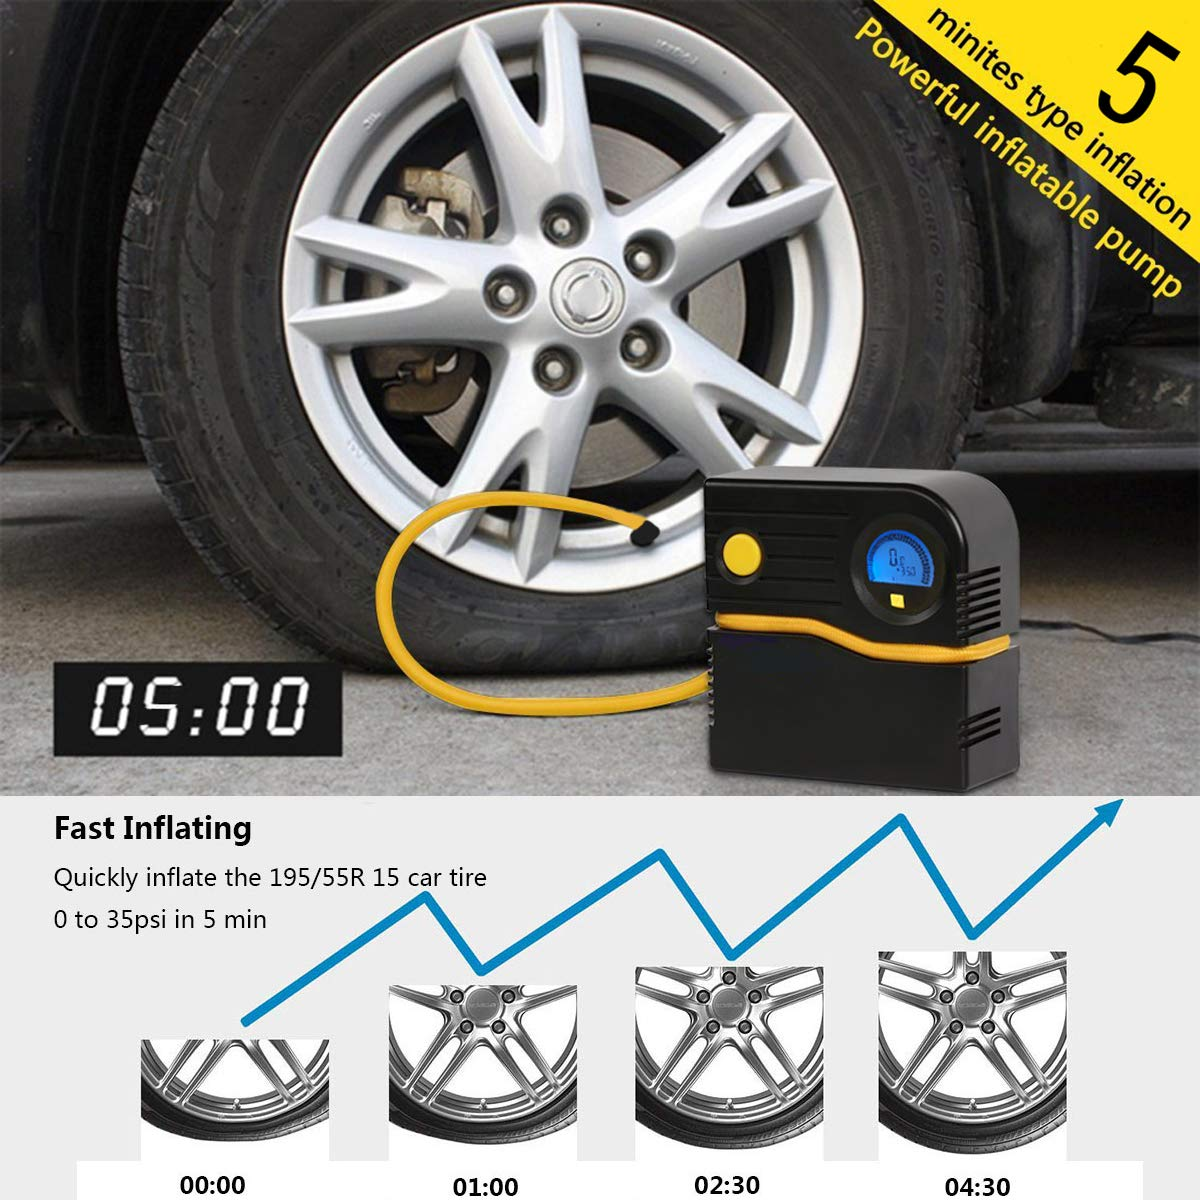 12V DC 150PSI Portable Air Compressor Tyre Inflator Auto Tire Pump WindGallop Car Air Pump Digital Display UP for Car Bicycle and Other Inflatables